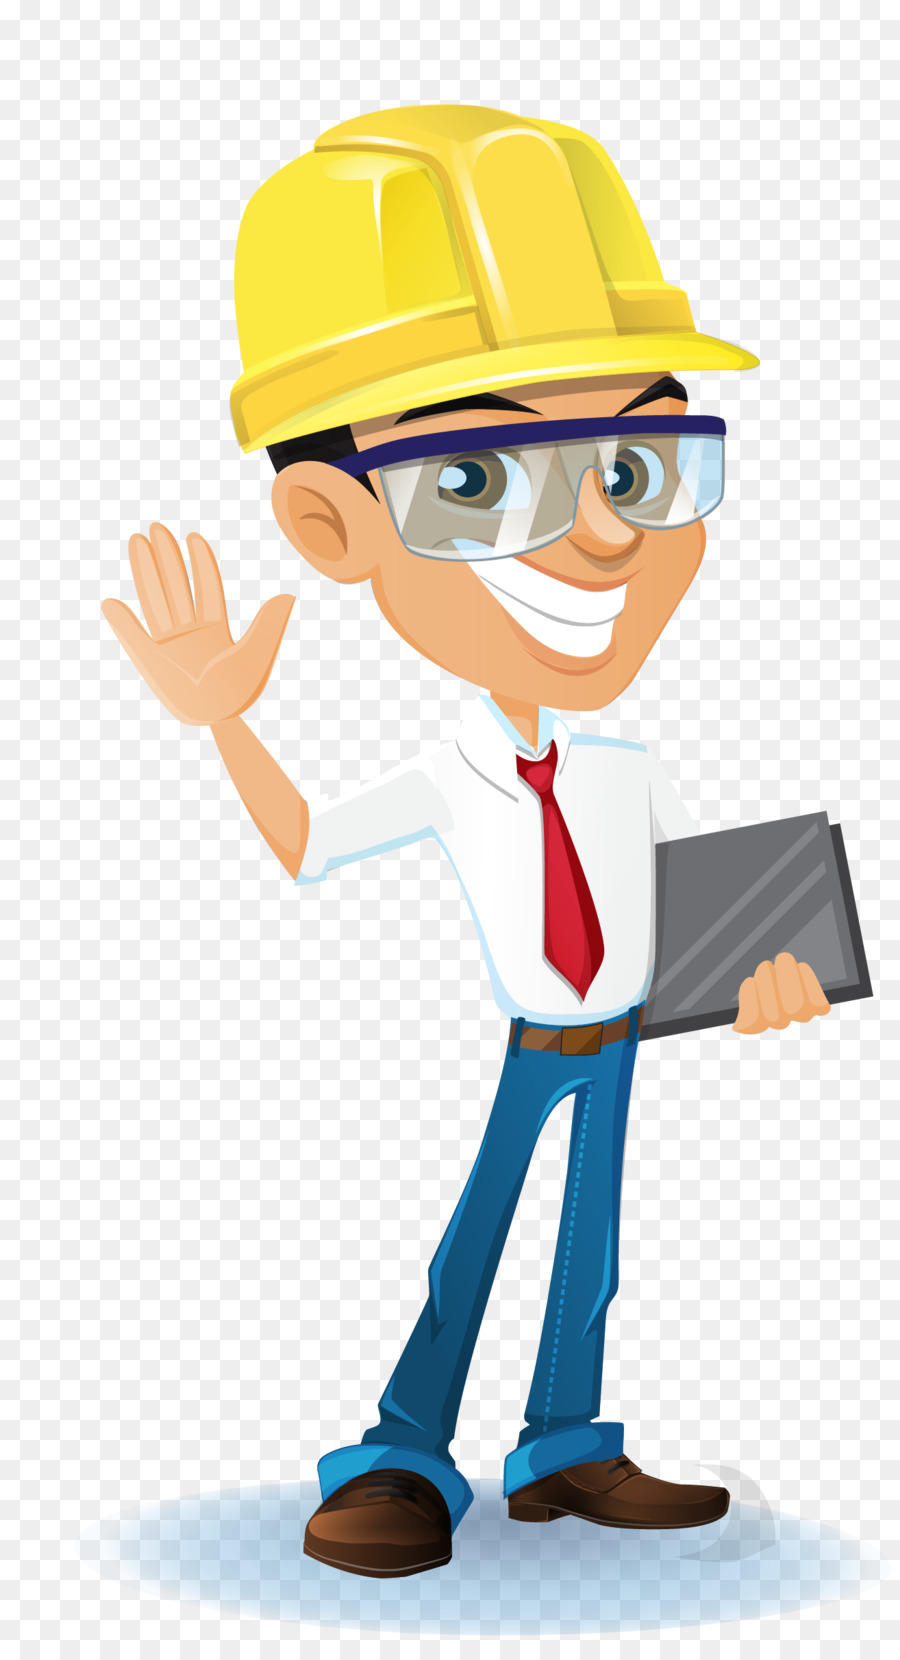 Ingenieur clipart vector free library Architectural engineering-clipart - Vektor-Bau-Ingenieur png ... vector free library